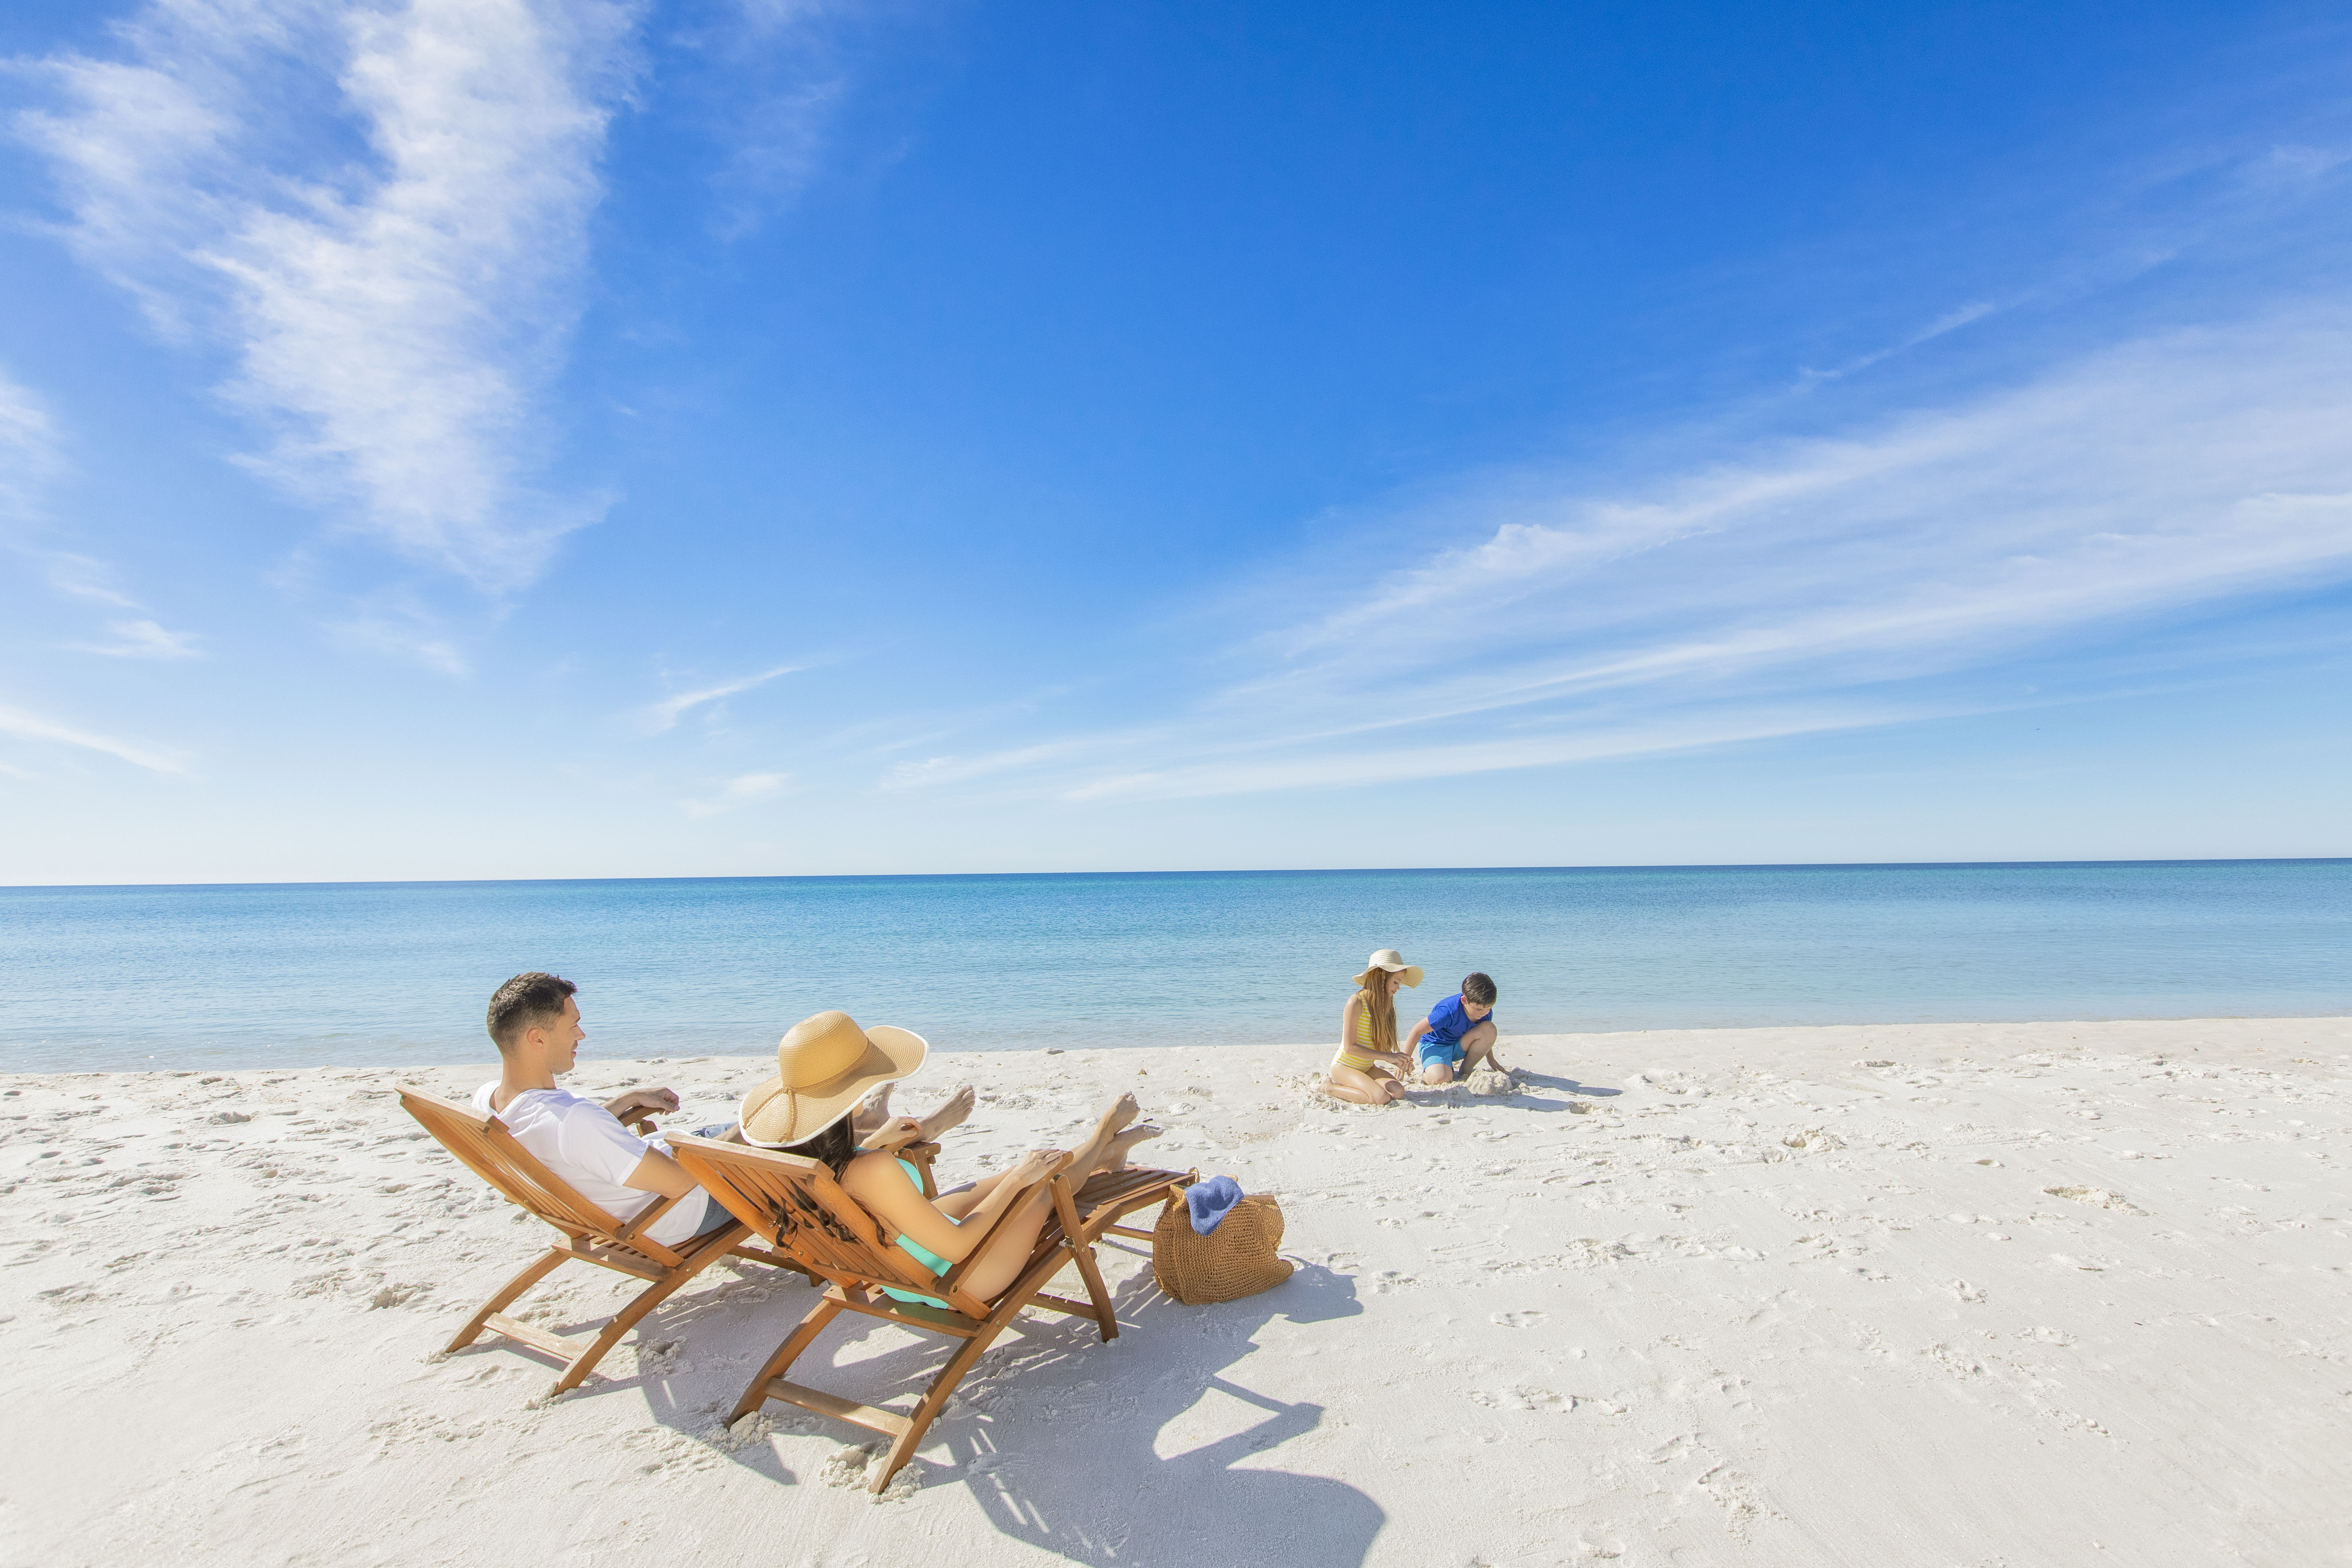 Home Navarre Beach Florida S Most Relaxing Place Navarre Beach Florida Navarre Beach Florida Vacation